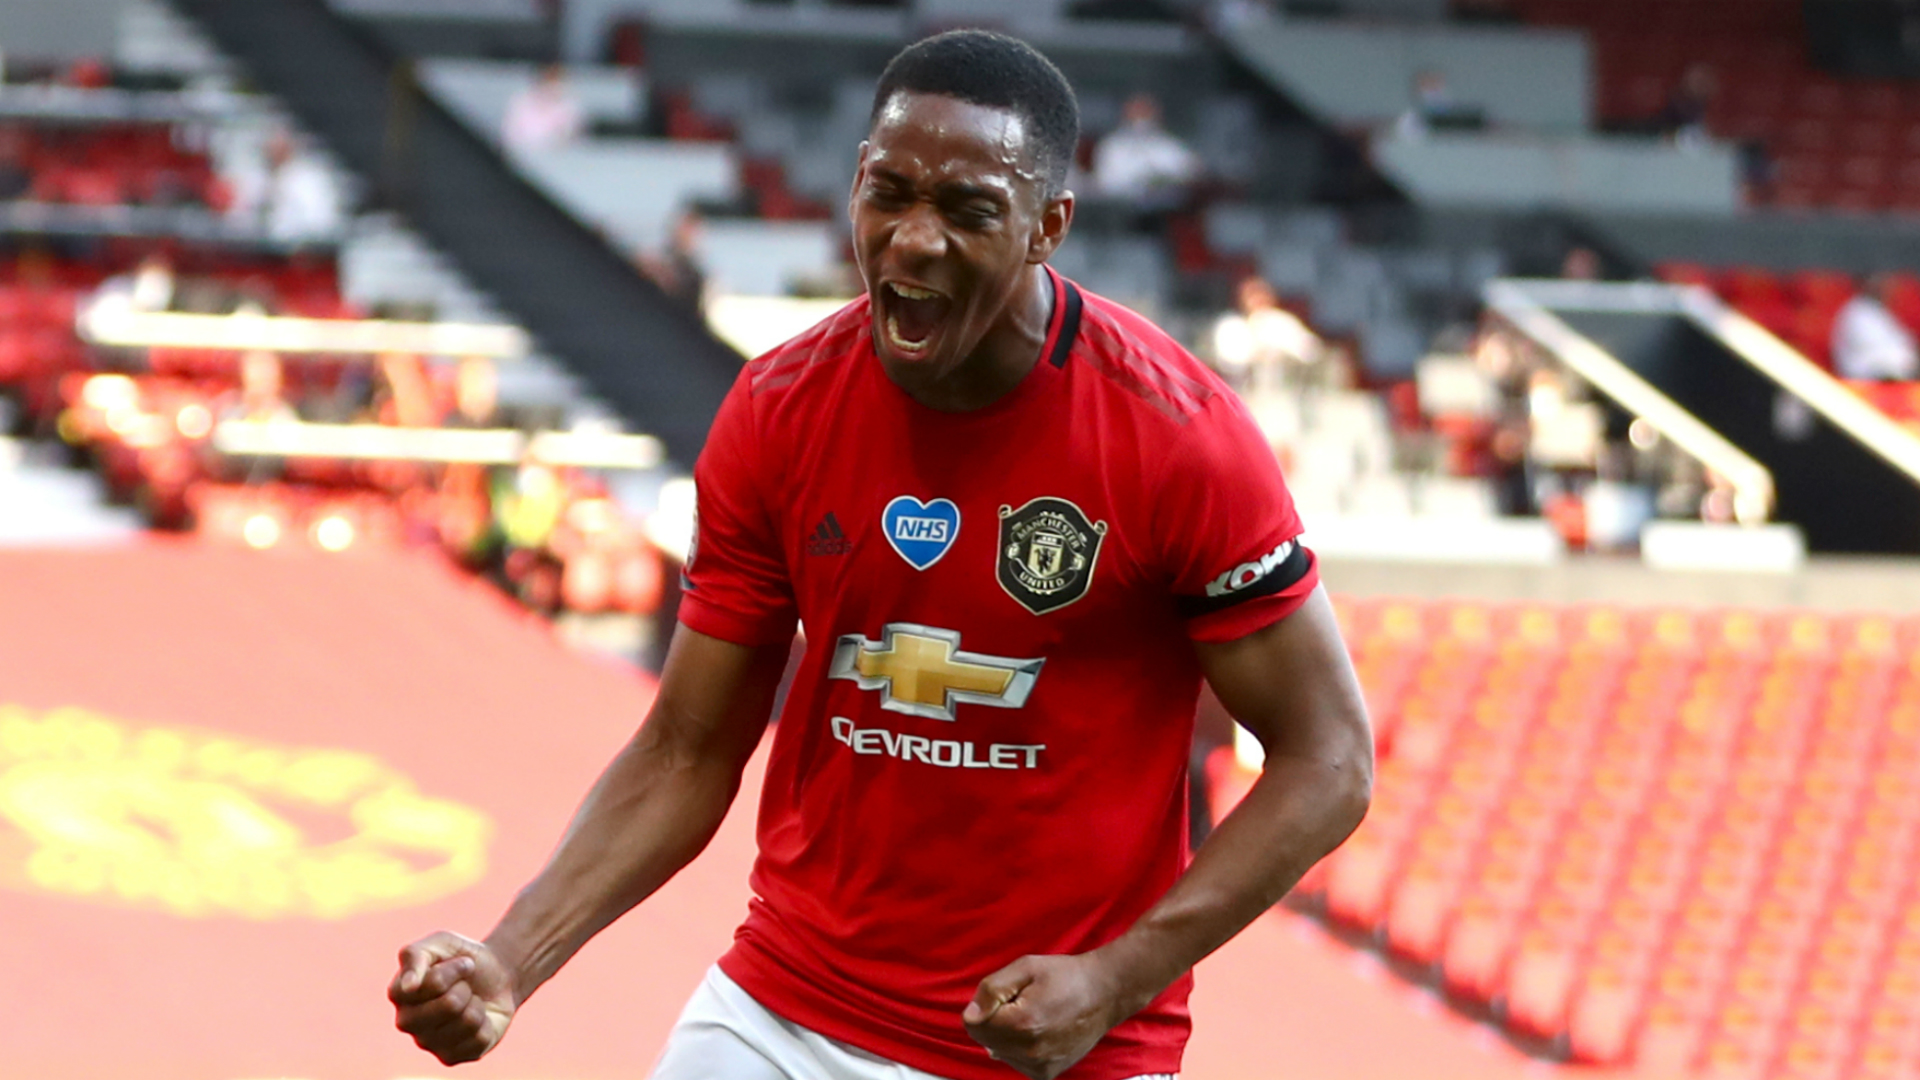 EPL: Midfielder signs five-year deal with Man Utd